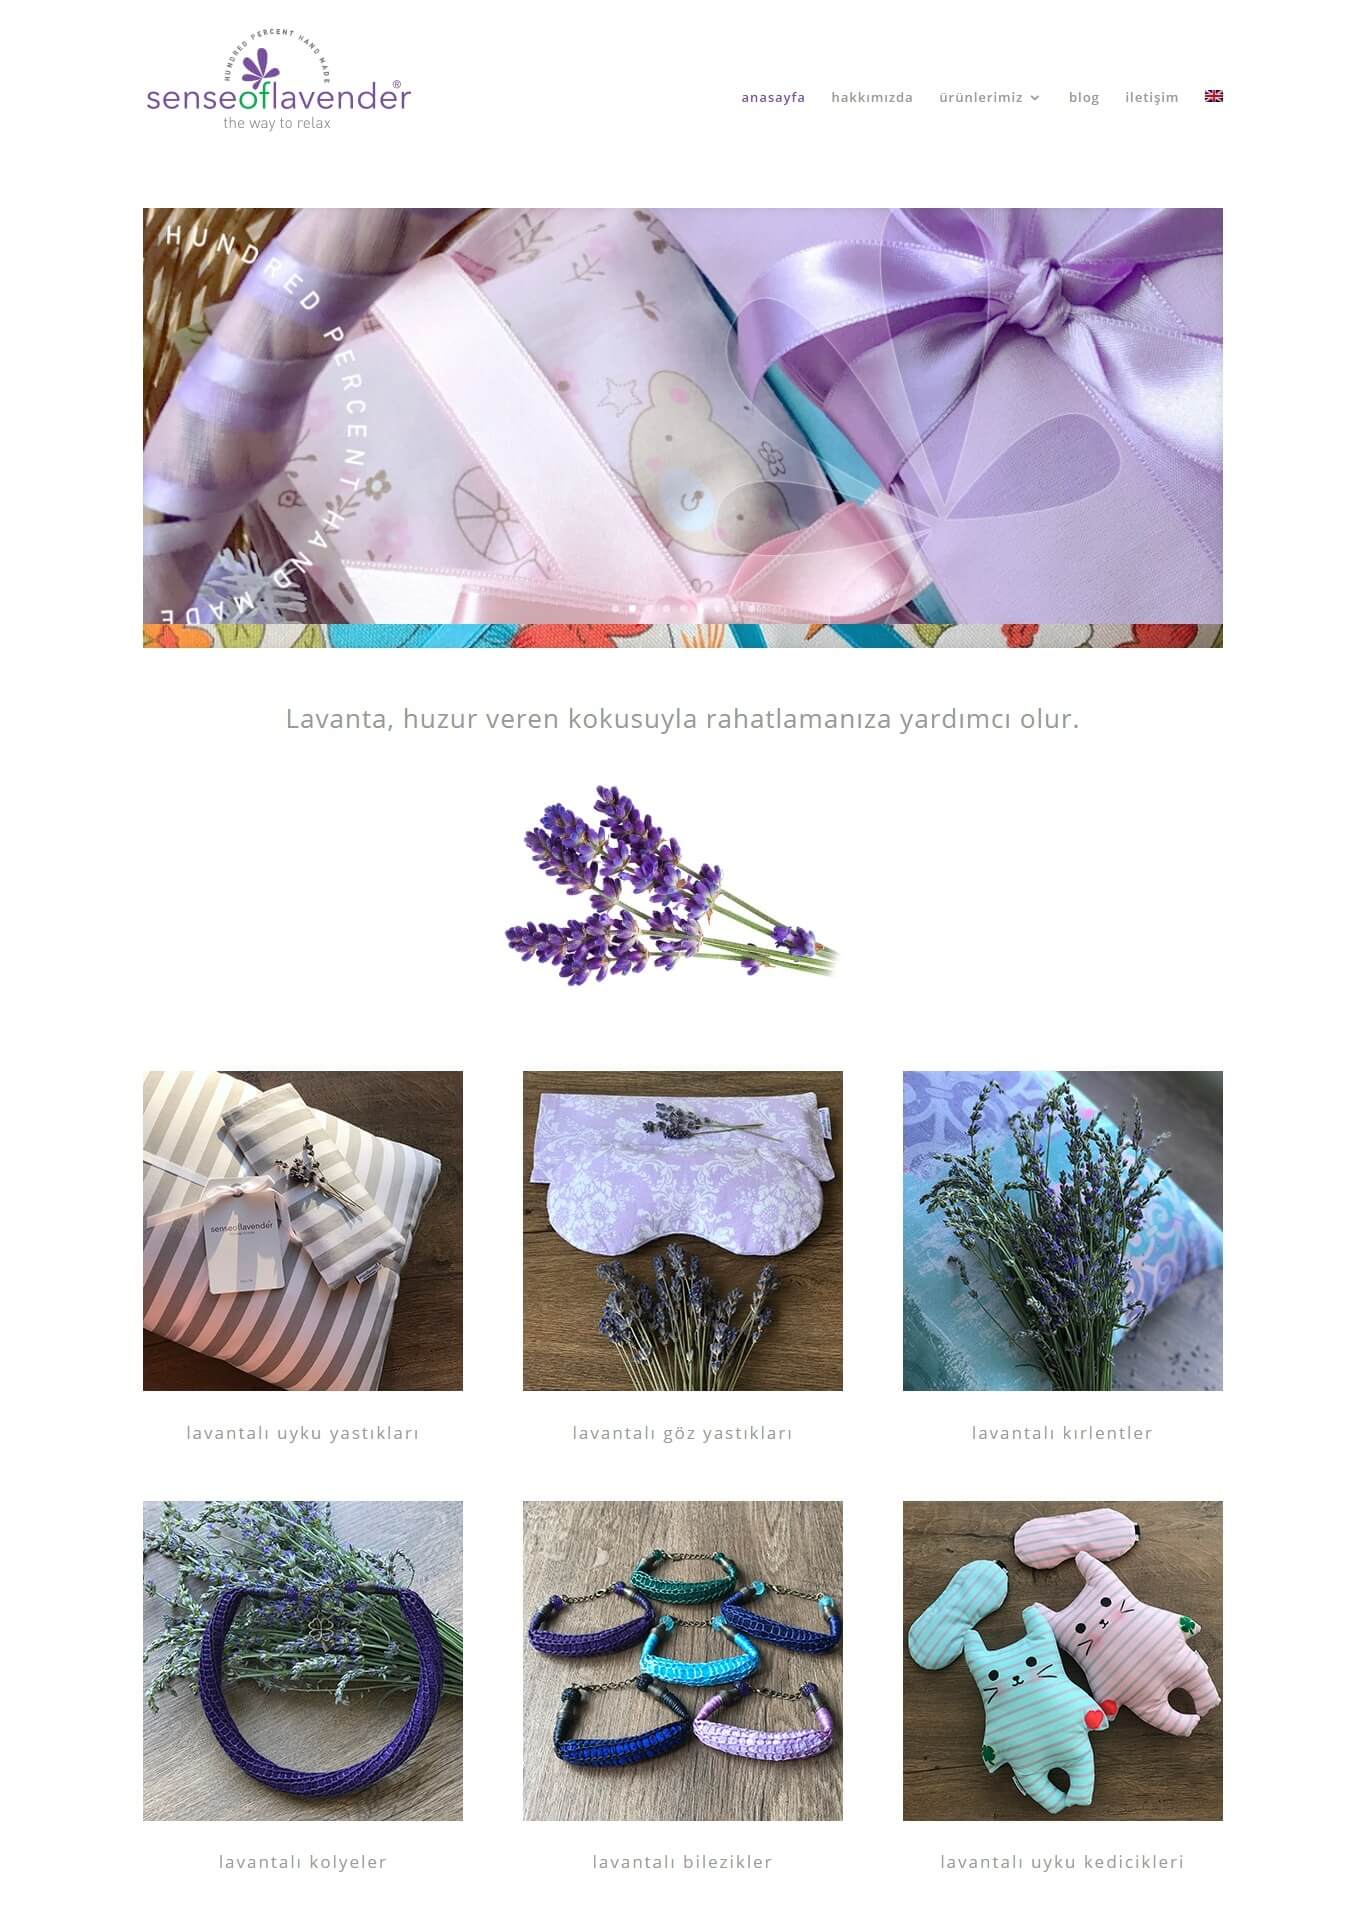 sense of lavender web site design